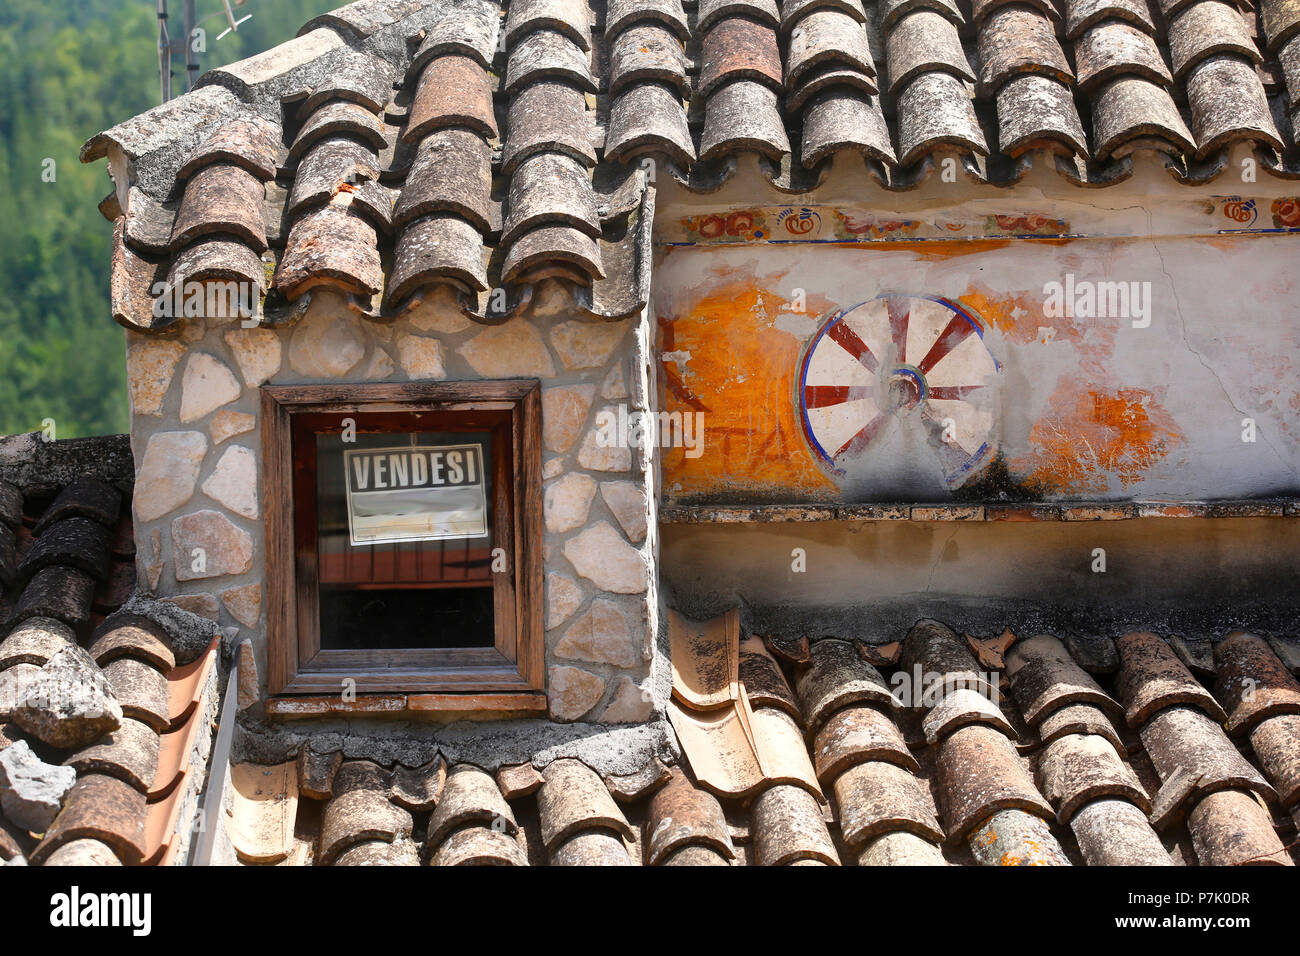 Roof detail of a house for sale in Italy. - Stock Image